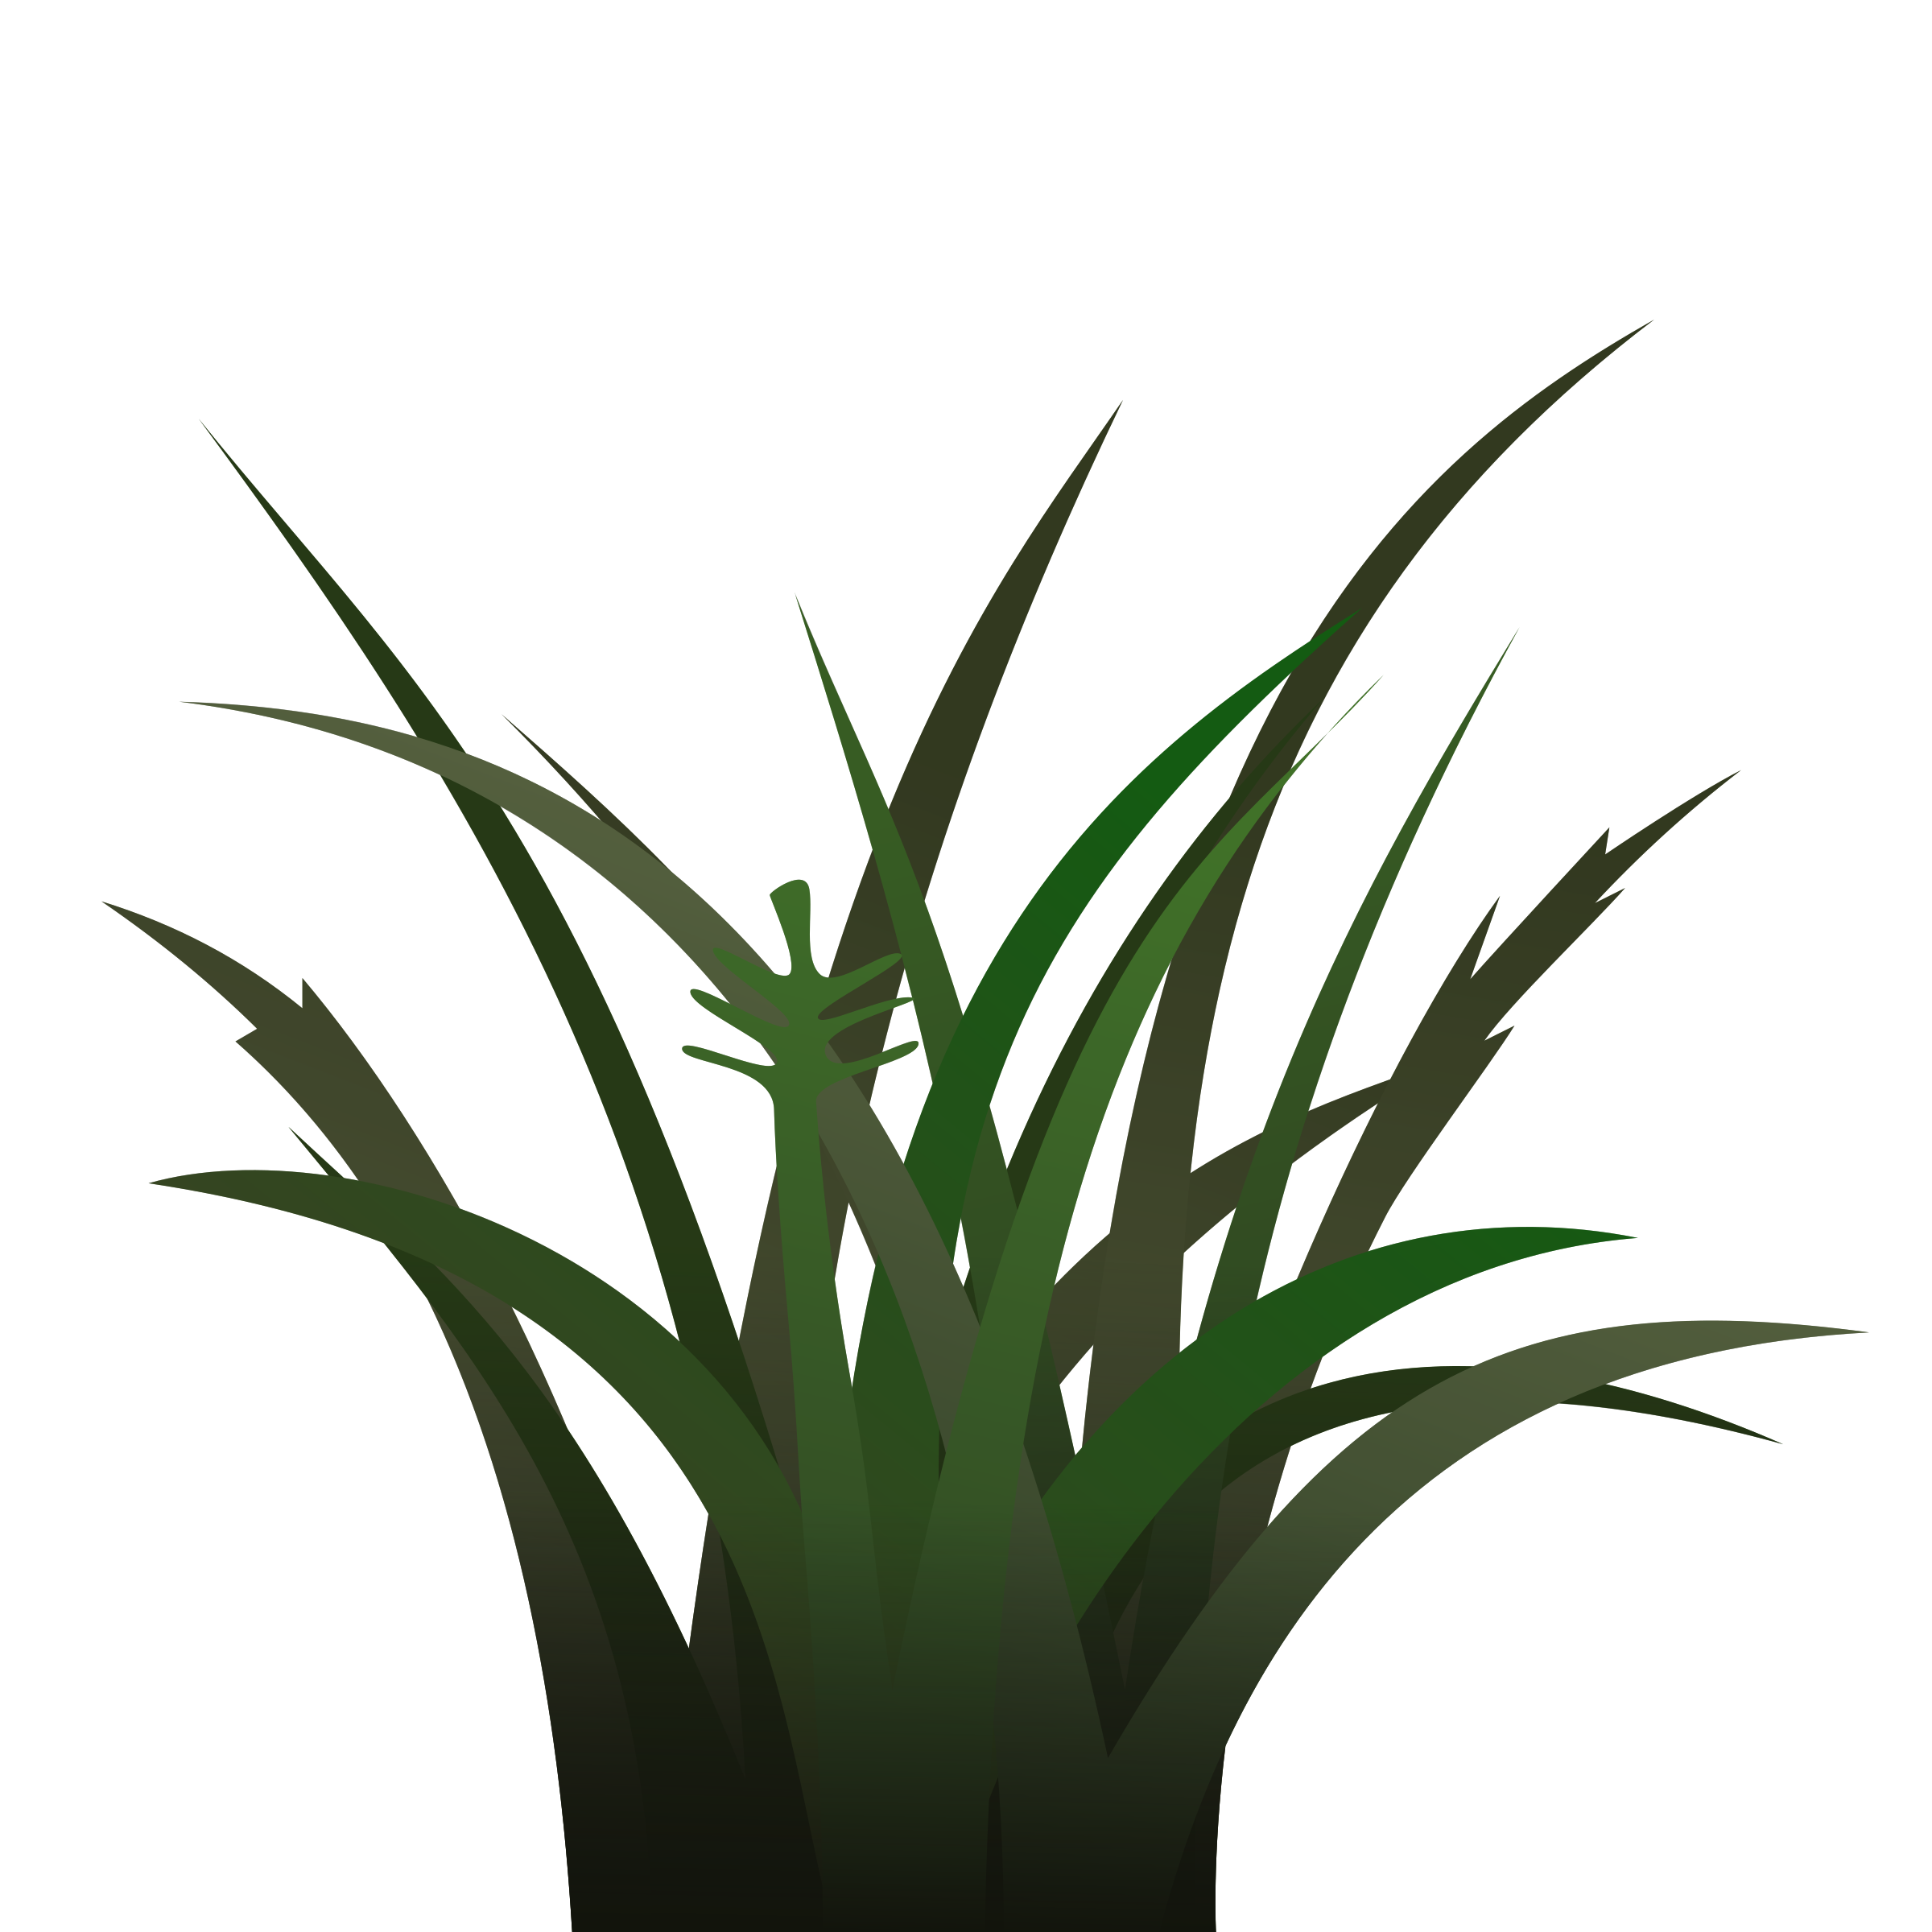 Darker shaded big image. Grass clipart shadow